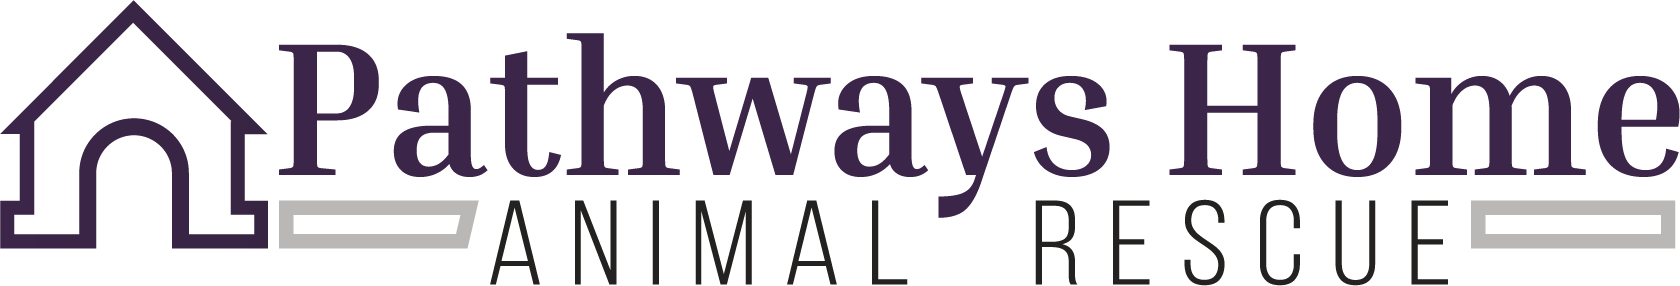 Pathways Home Animal Rescue